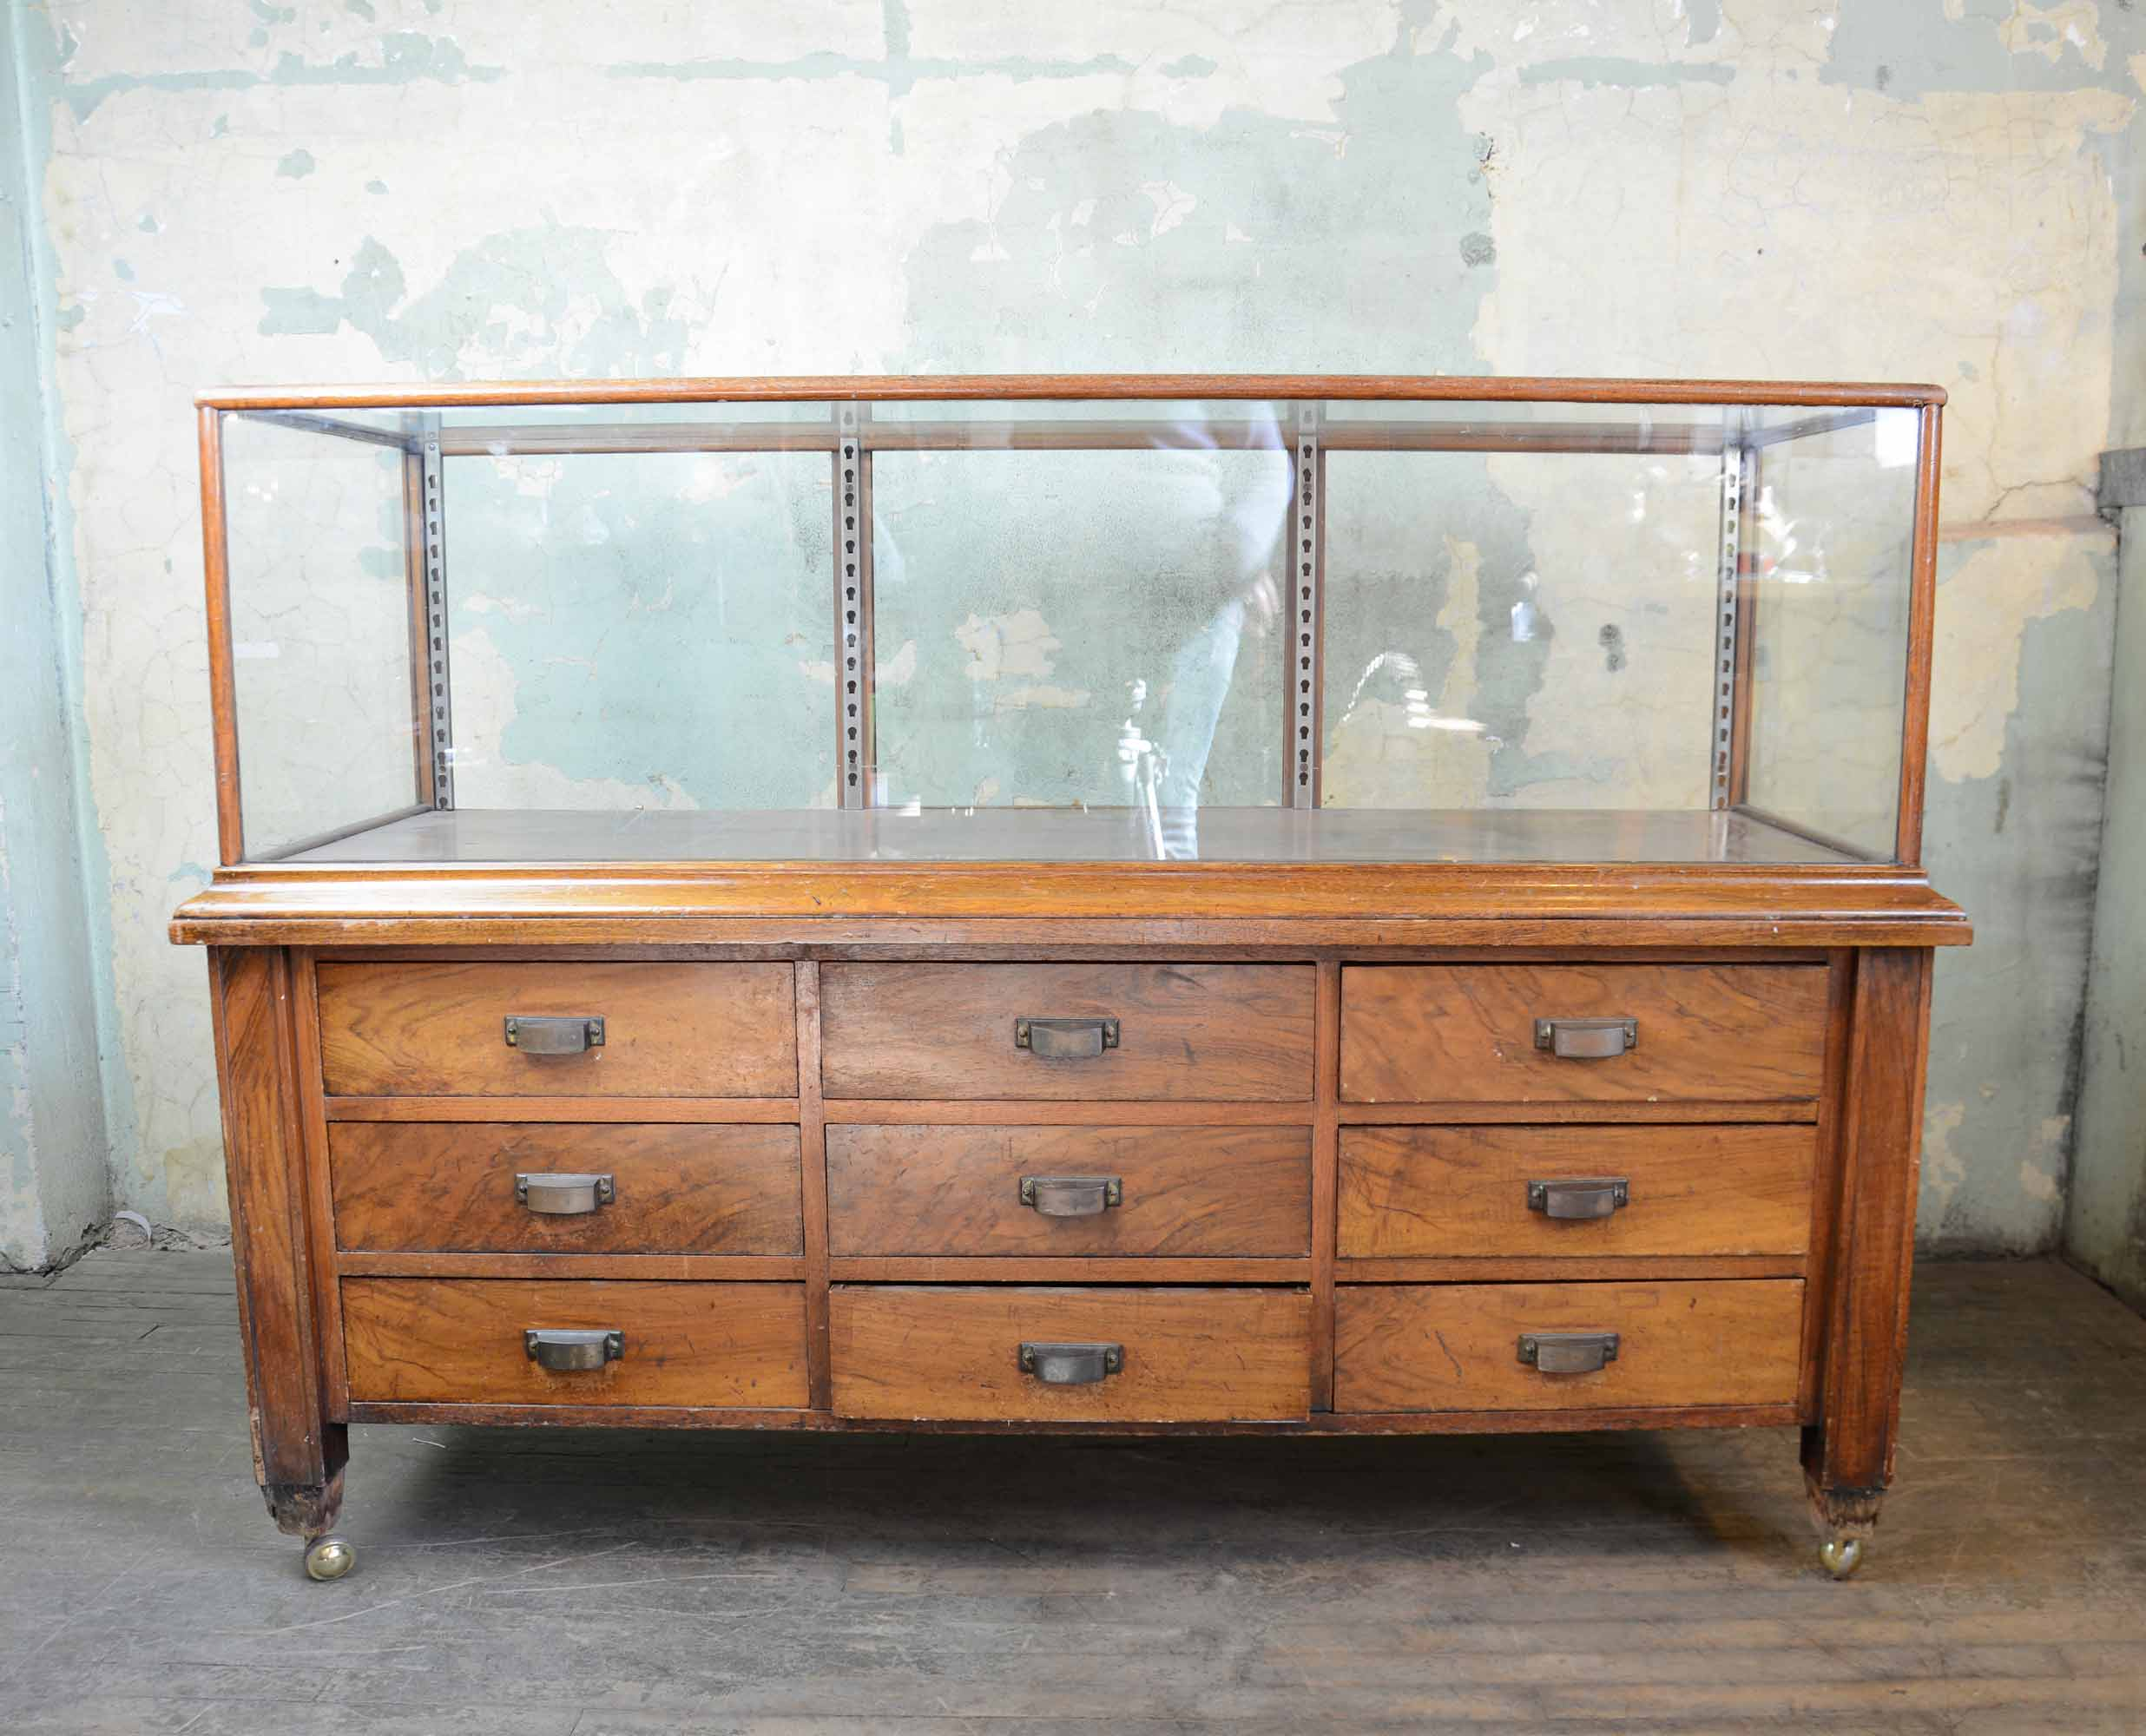 46917-display-case-with-drawers-FULL.jpg